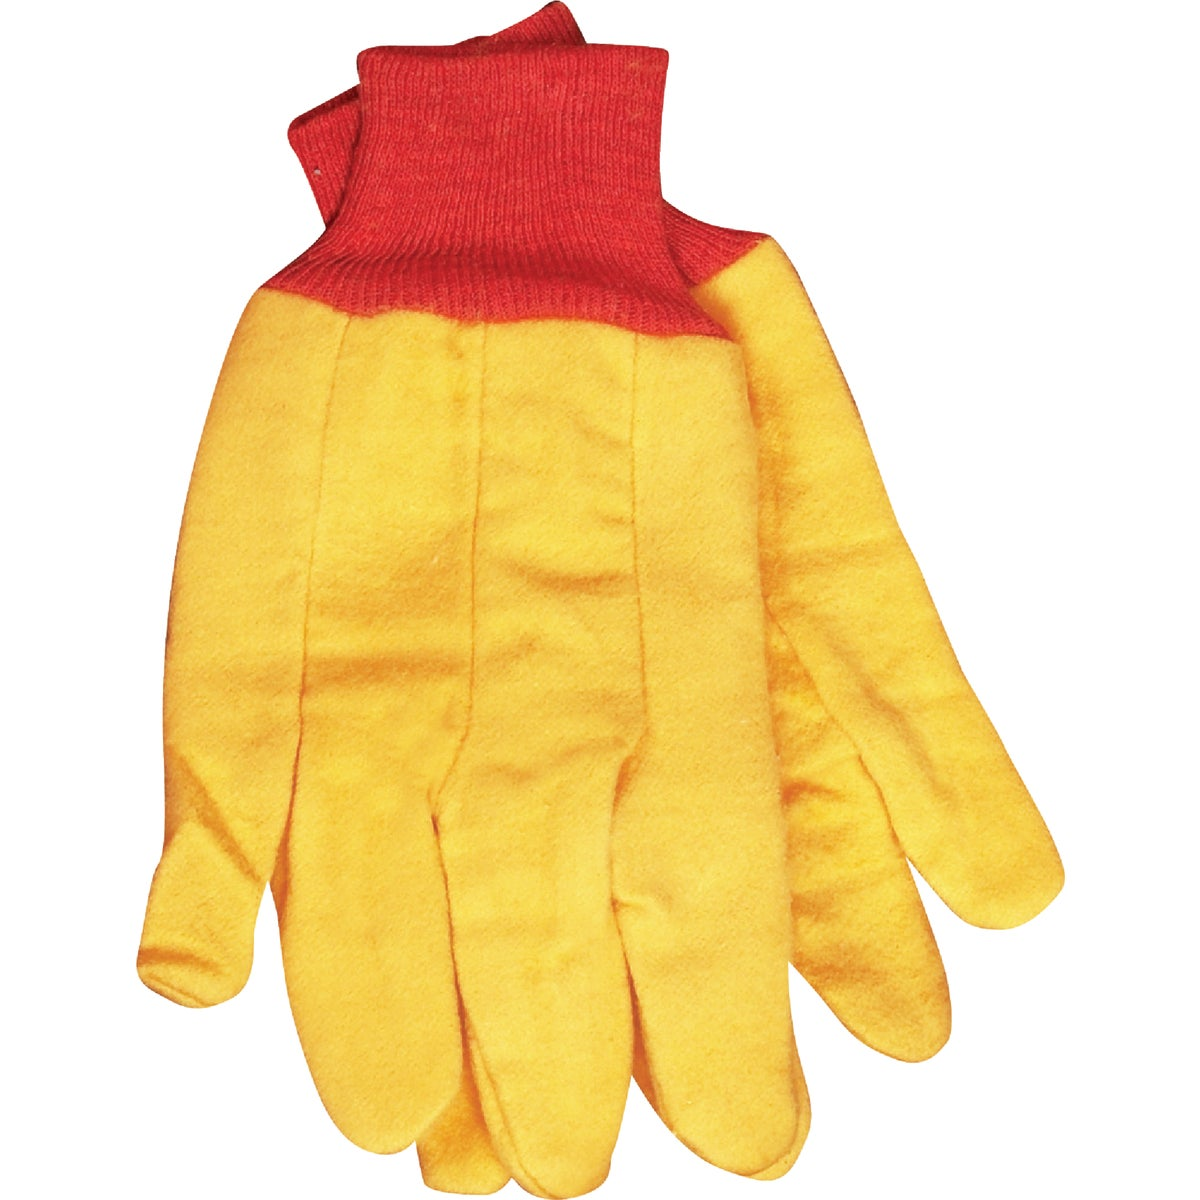 LRG CHORE GLOVE - 707756 by Do it Best